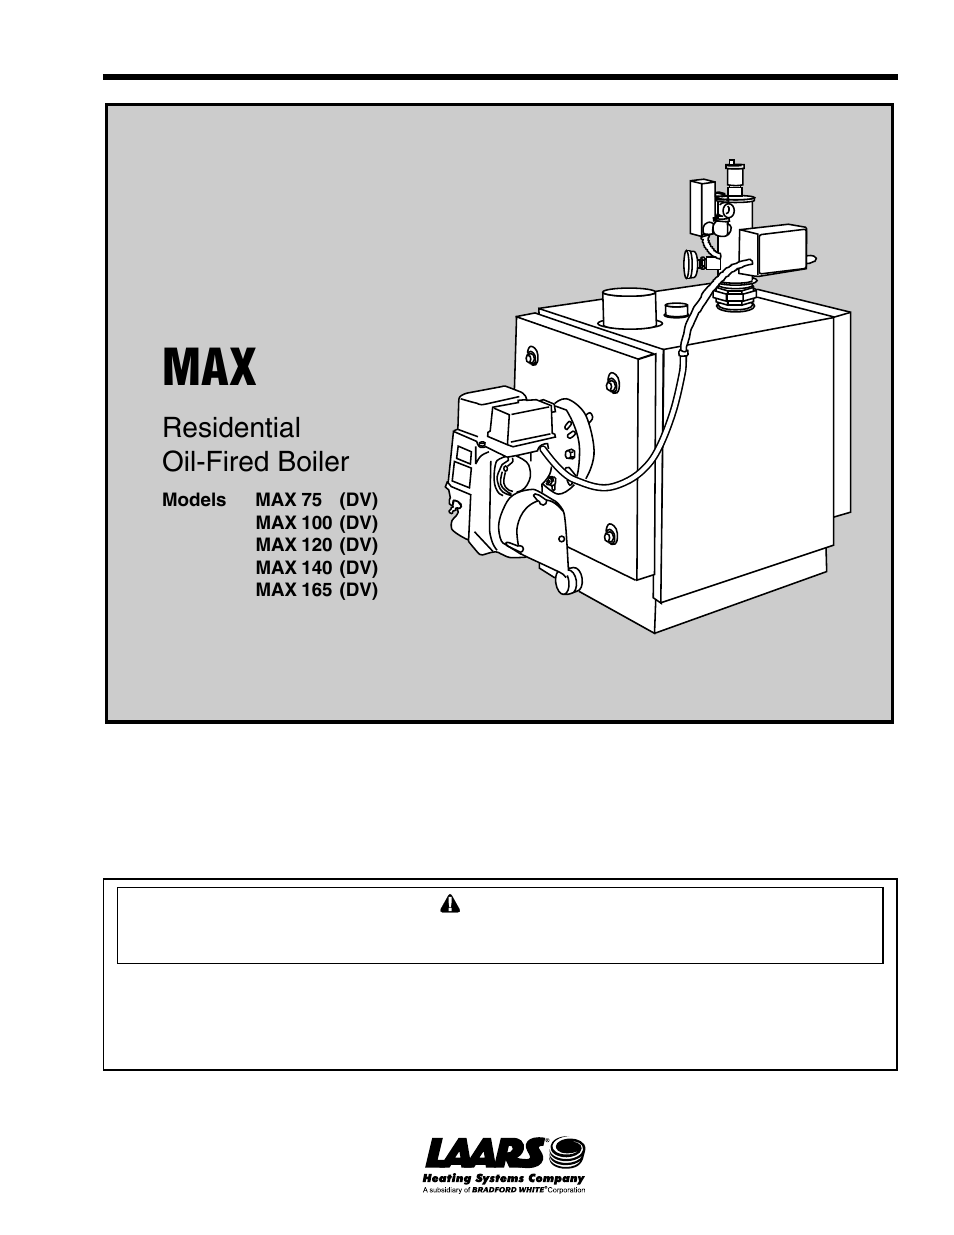 LAARS MAX 165 (DV) - Installation, Operation and Maintenance ...